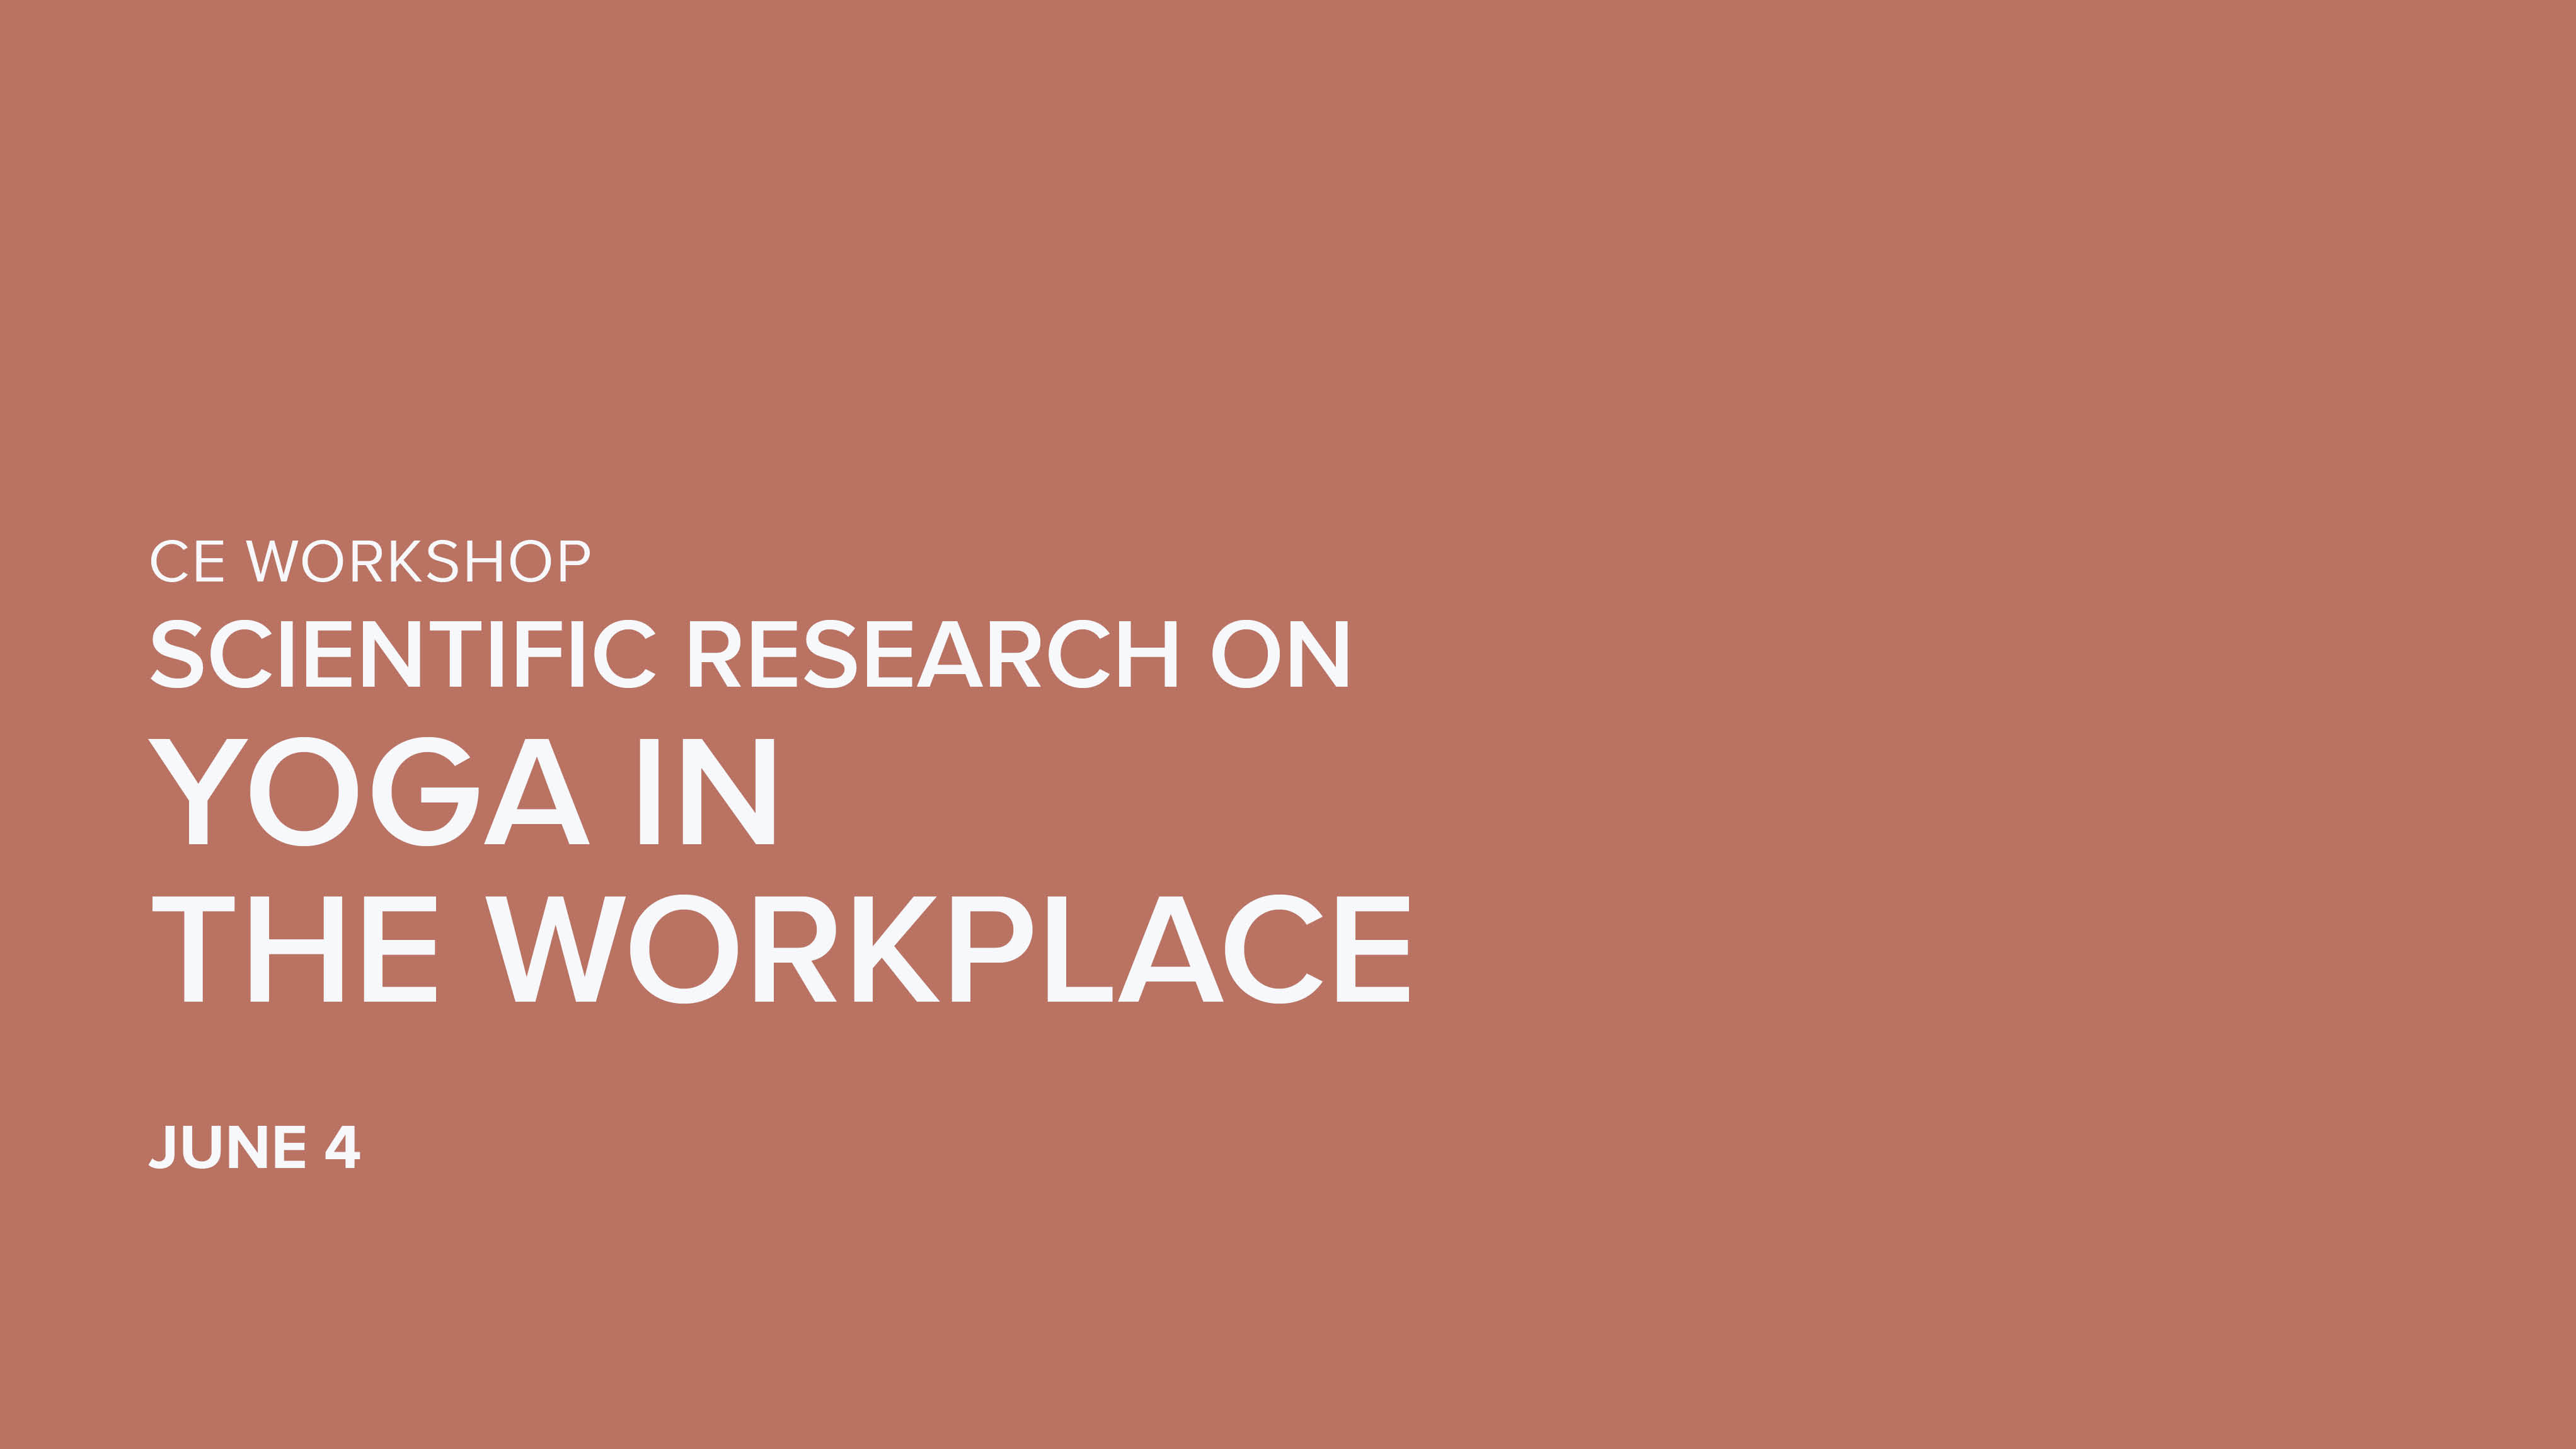 CE Workshop | Scientific Research on Yoga in the Workplace